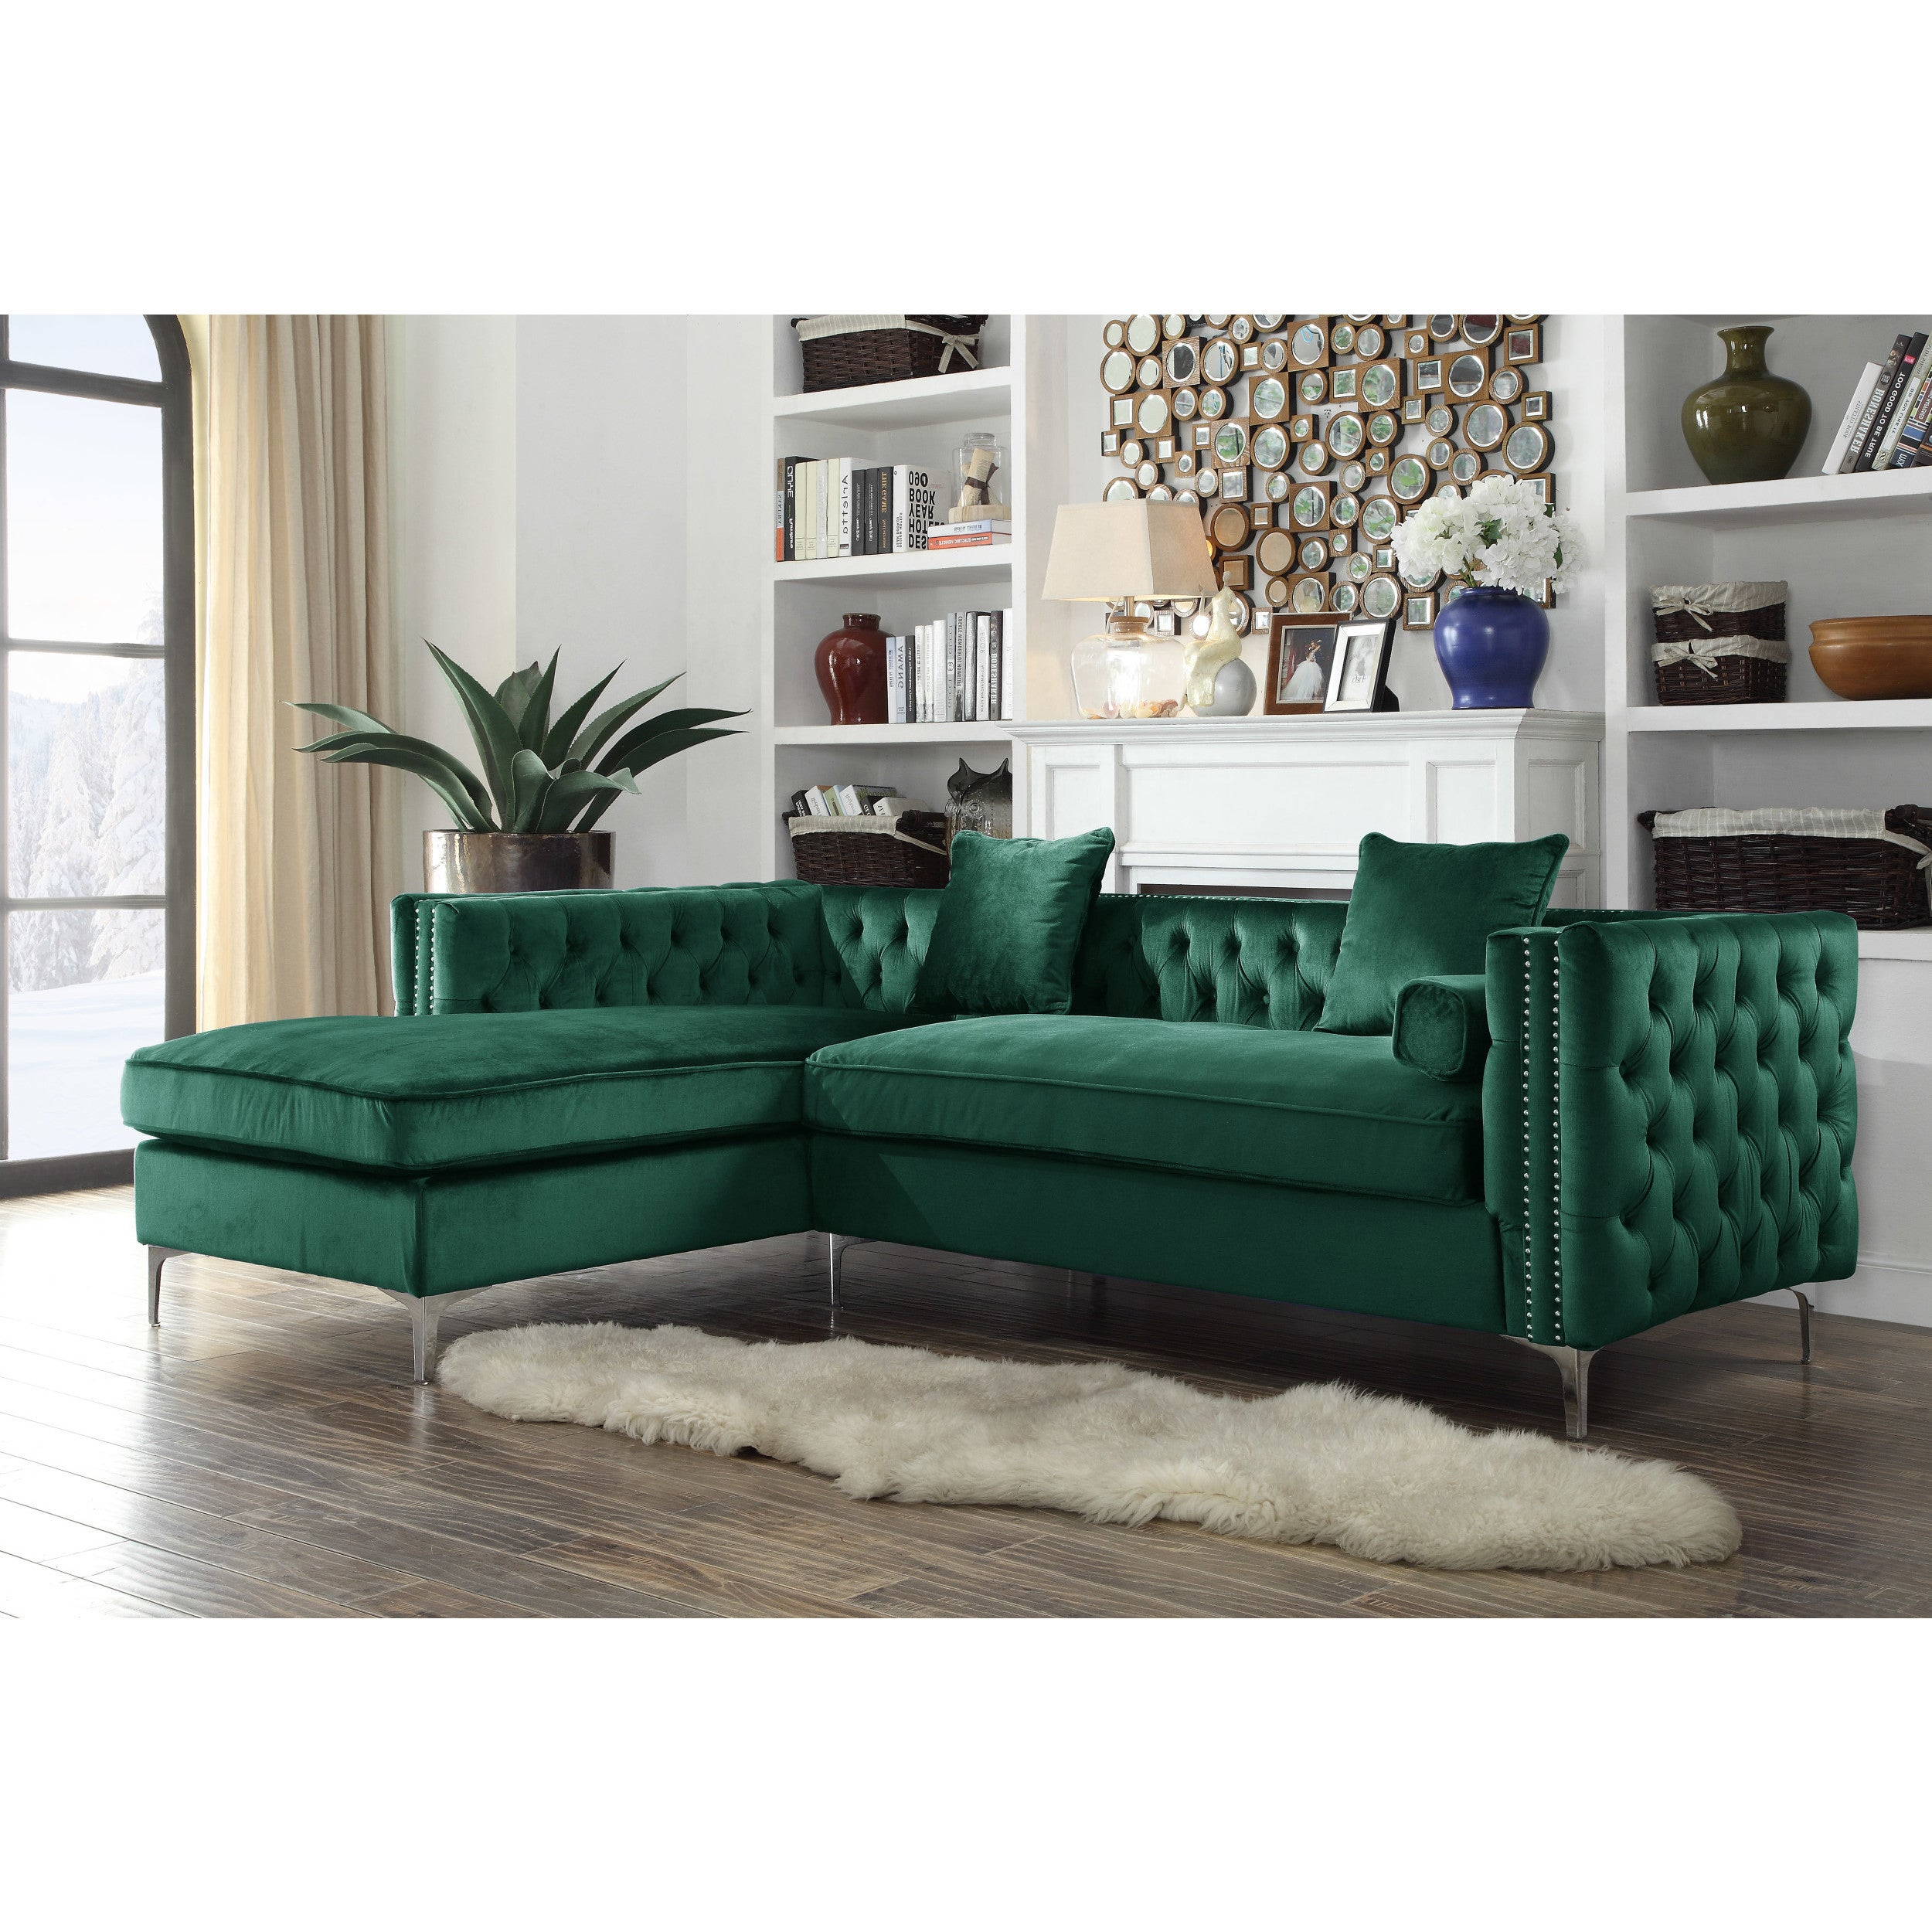 Shop Chic Home Monet Velvet Modern Contemporary Button Tufted With